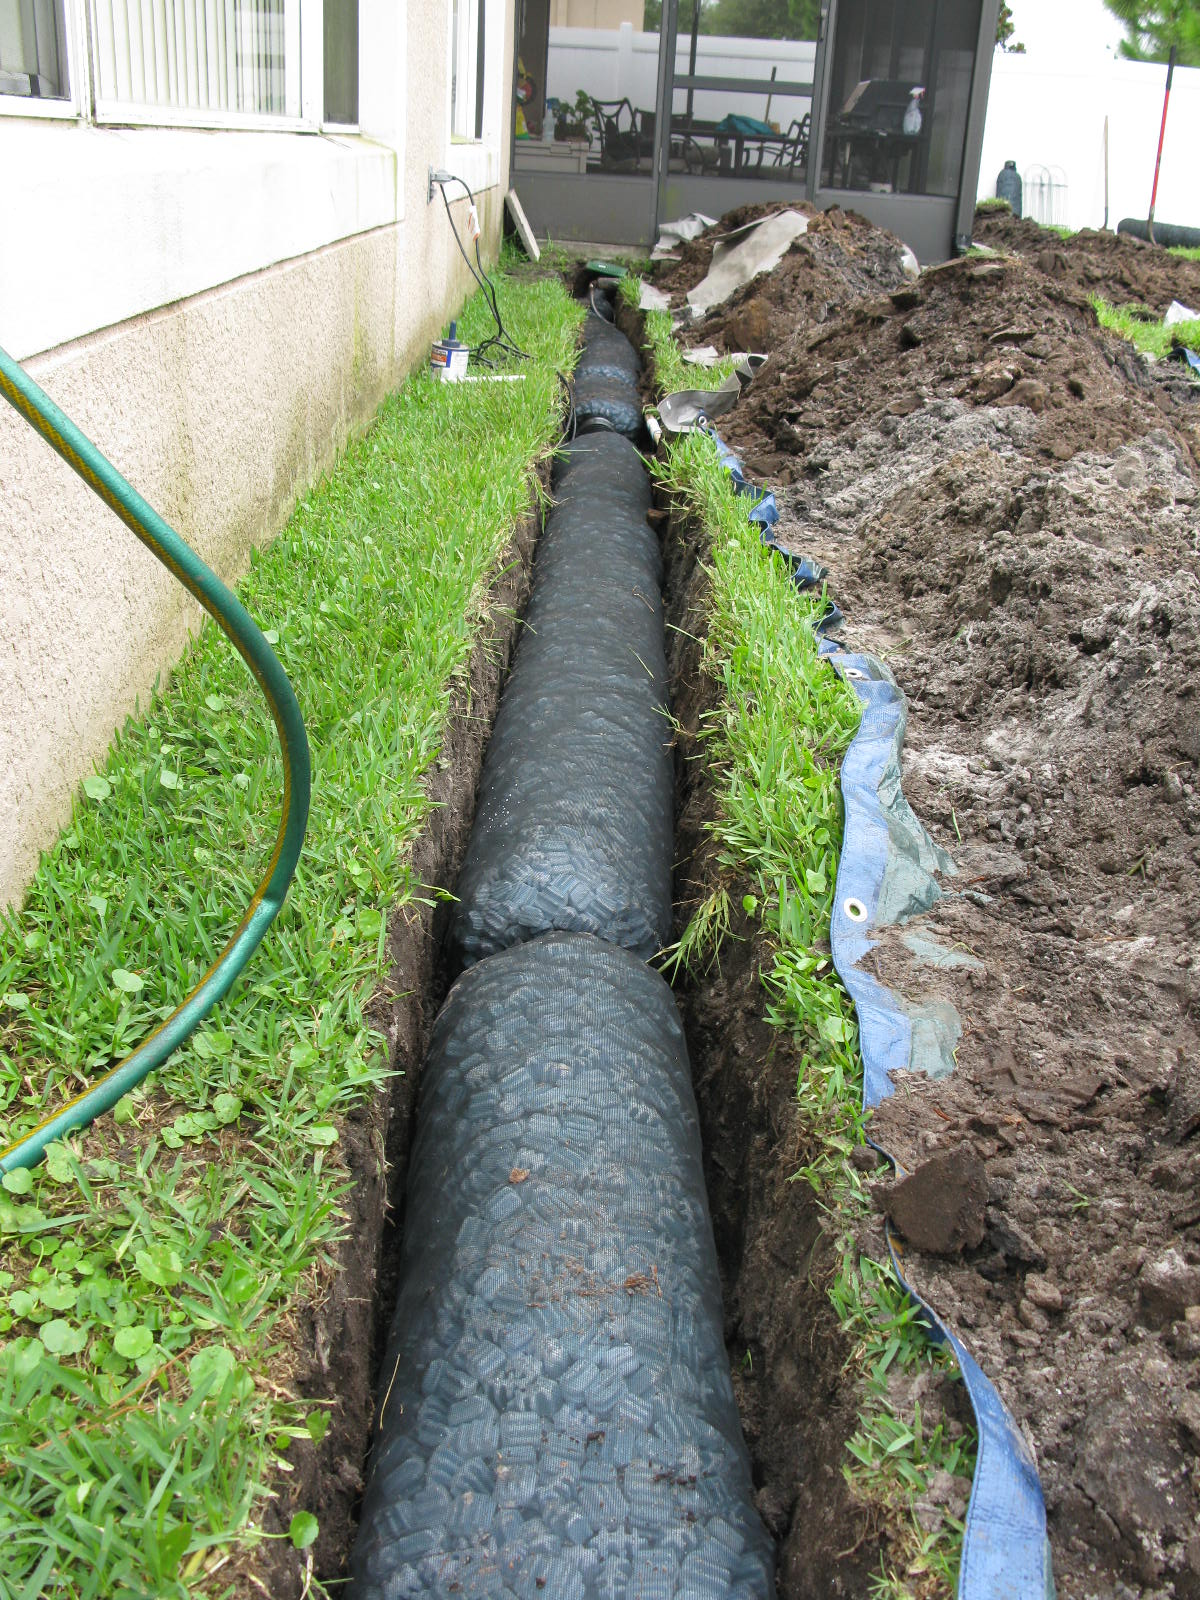 The Nds Ez Drain Pre Constructed French Drain Installation Orlando Sprinklers And Irrigation